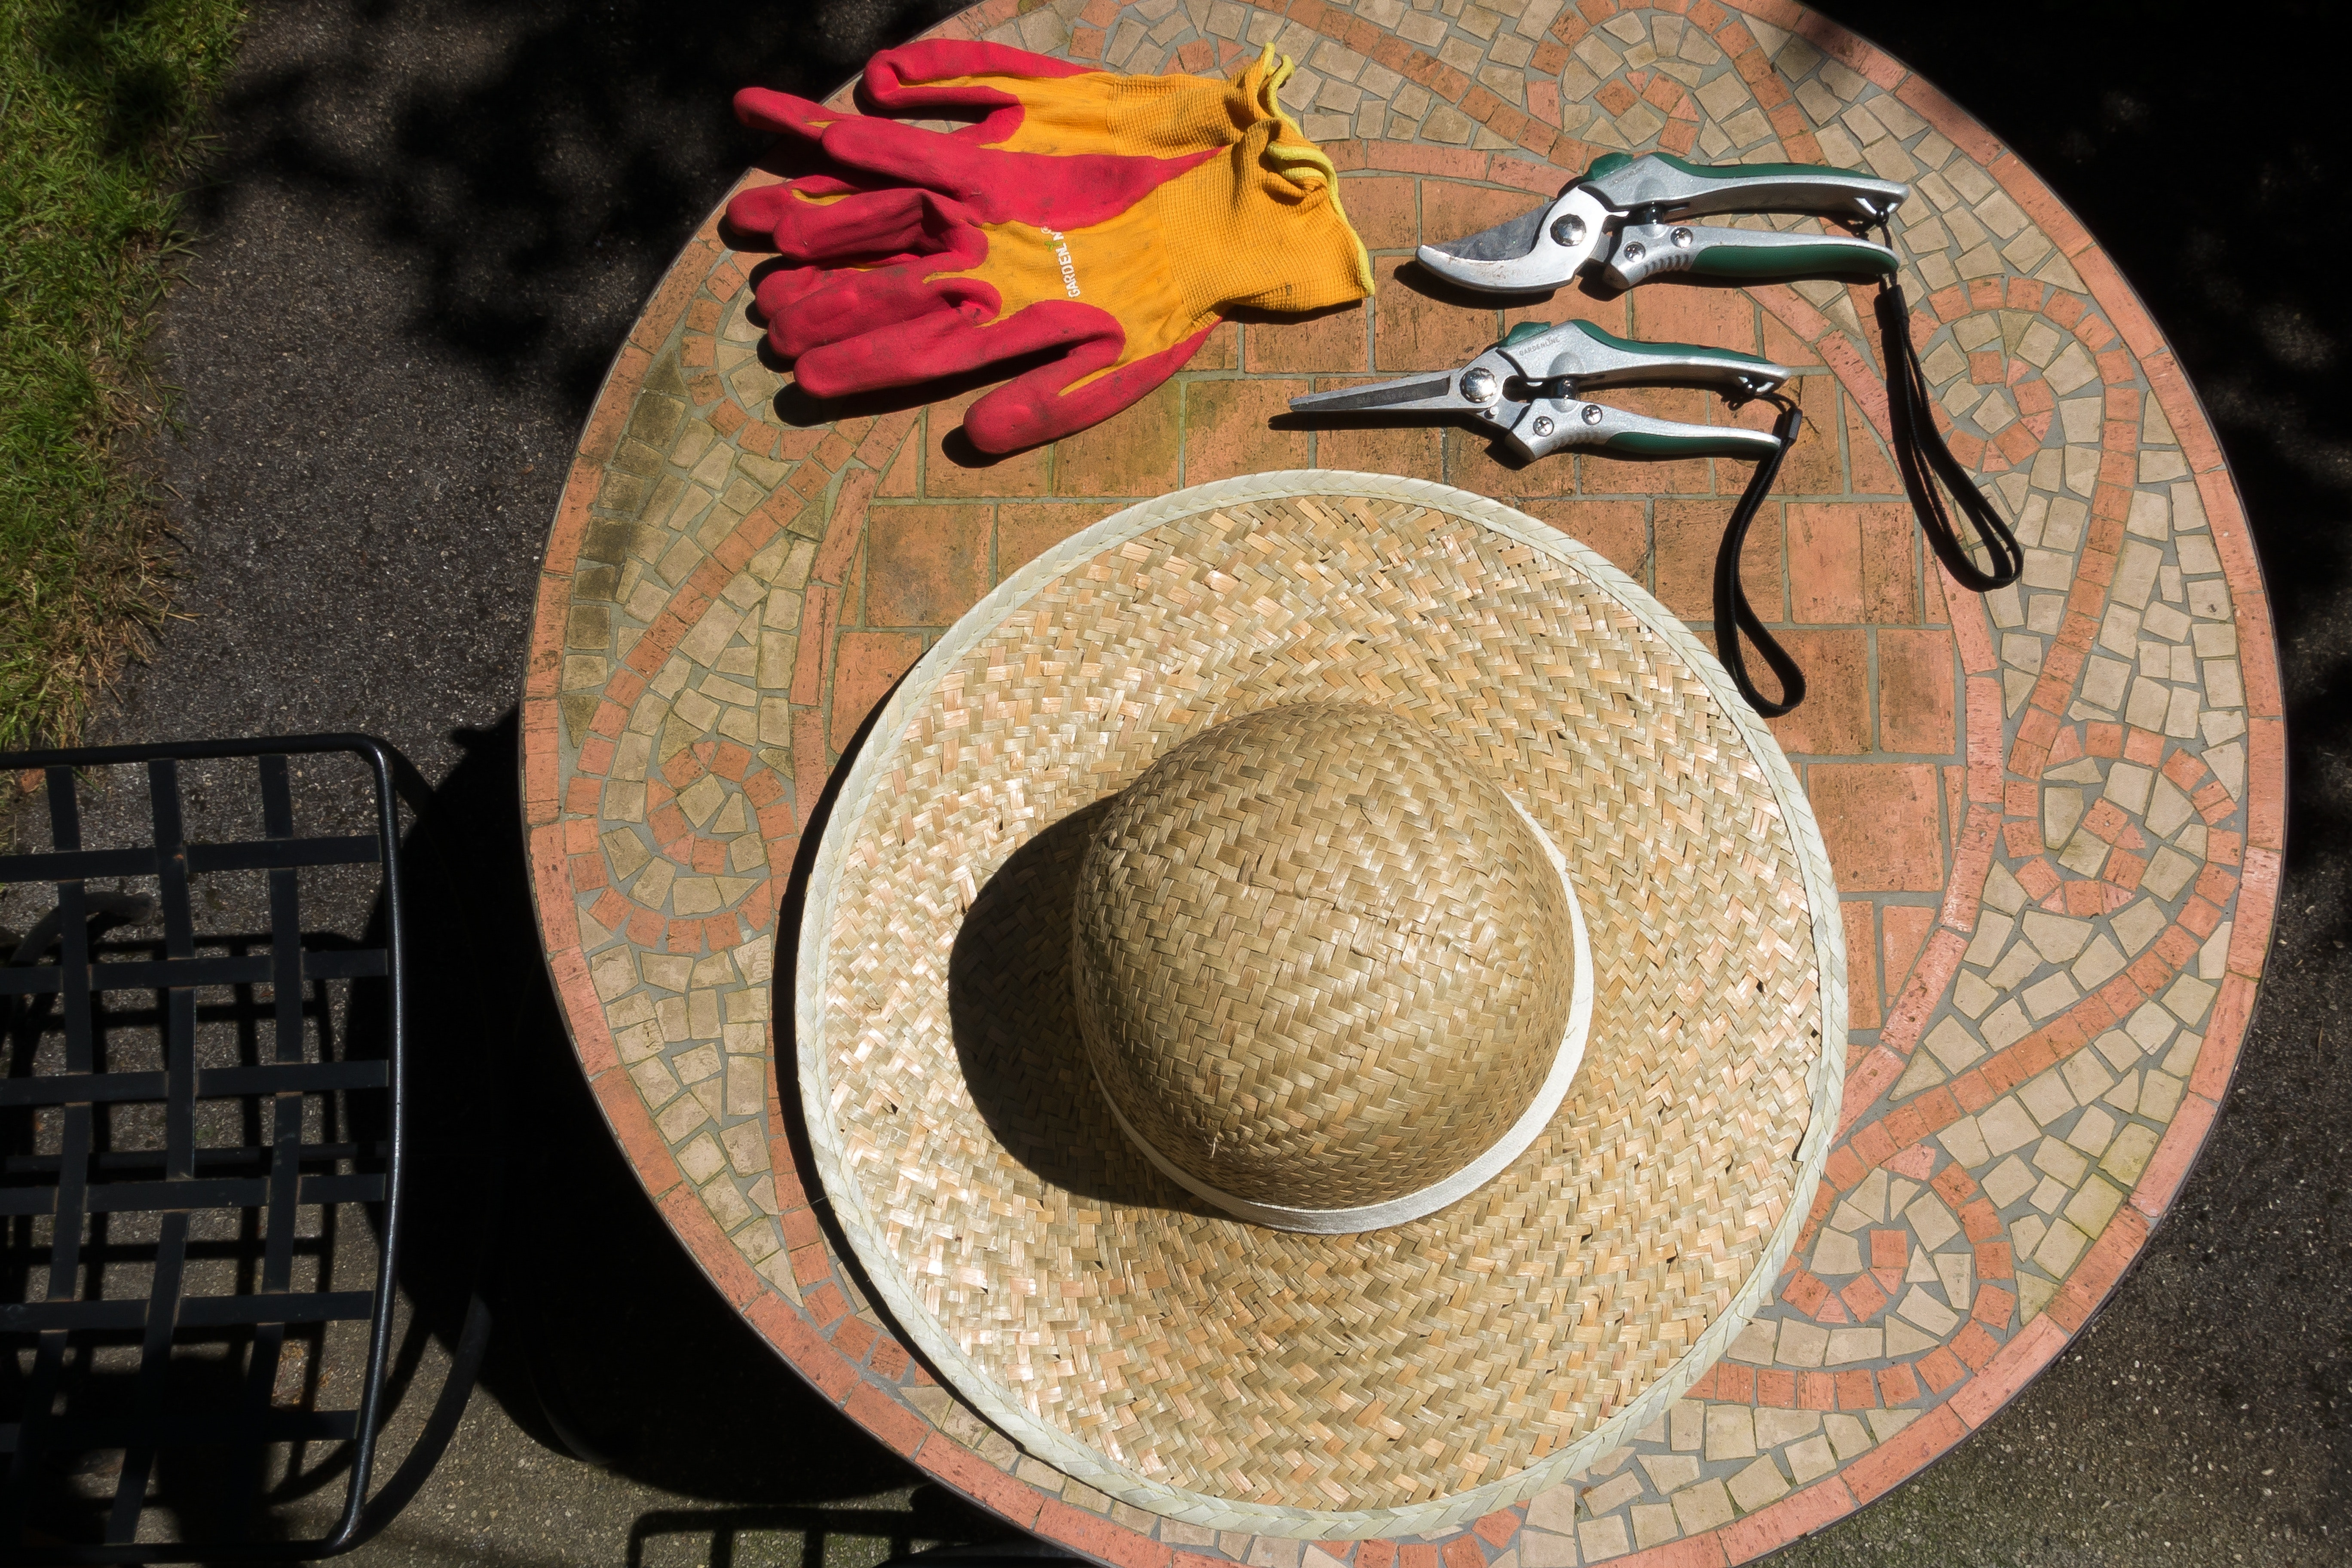 brown hat at the top of round table with garden scissors